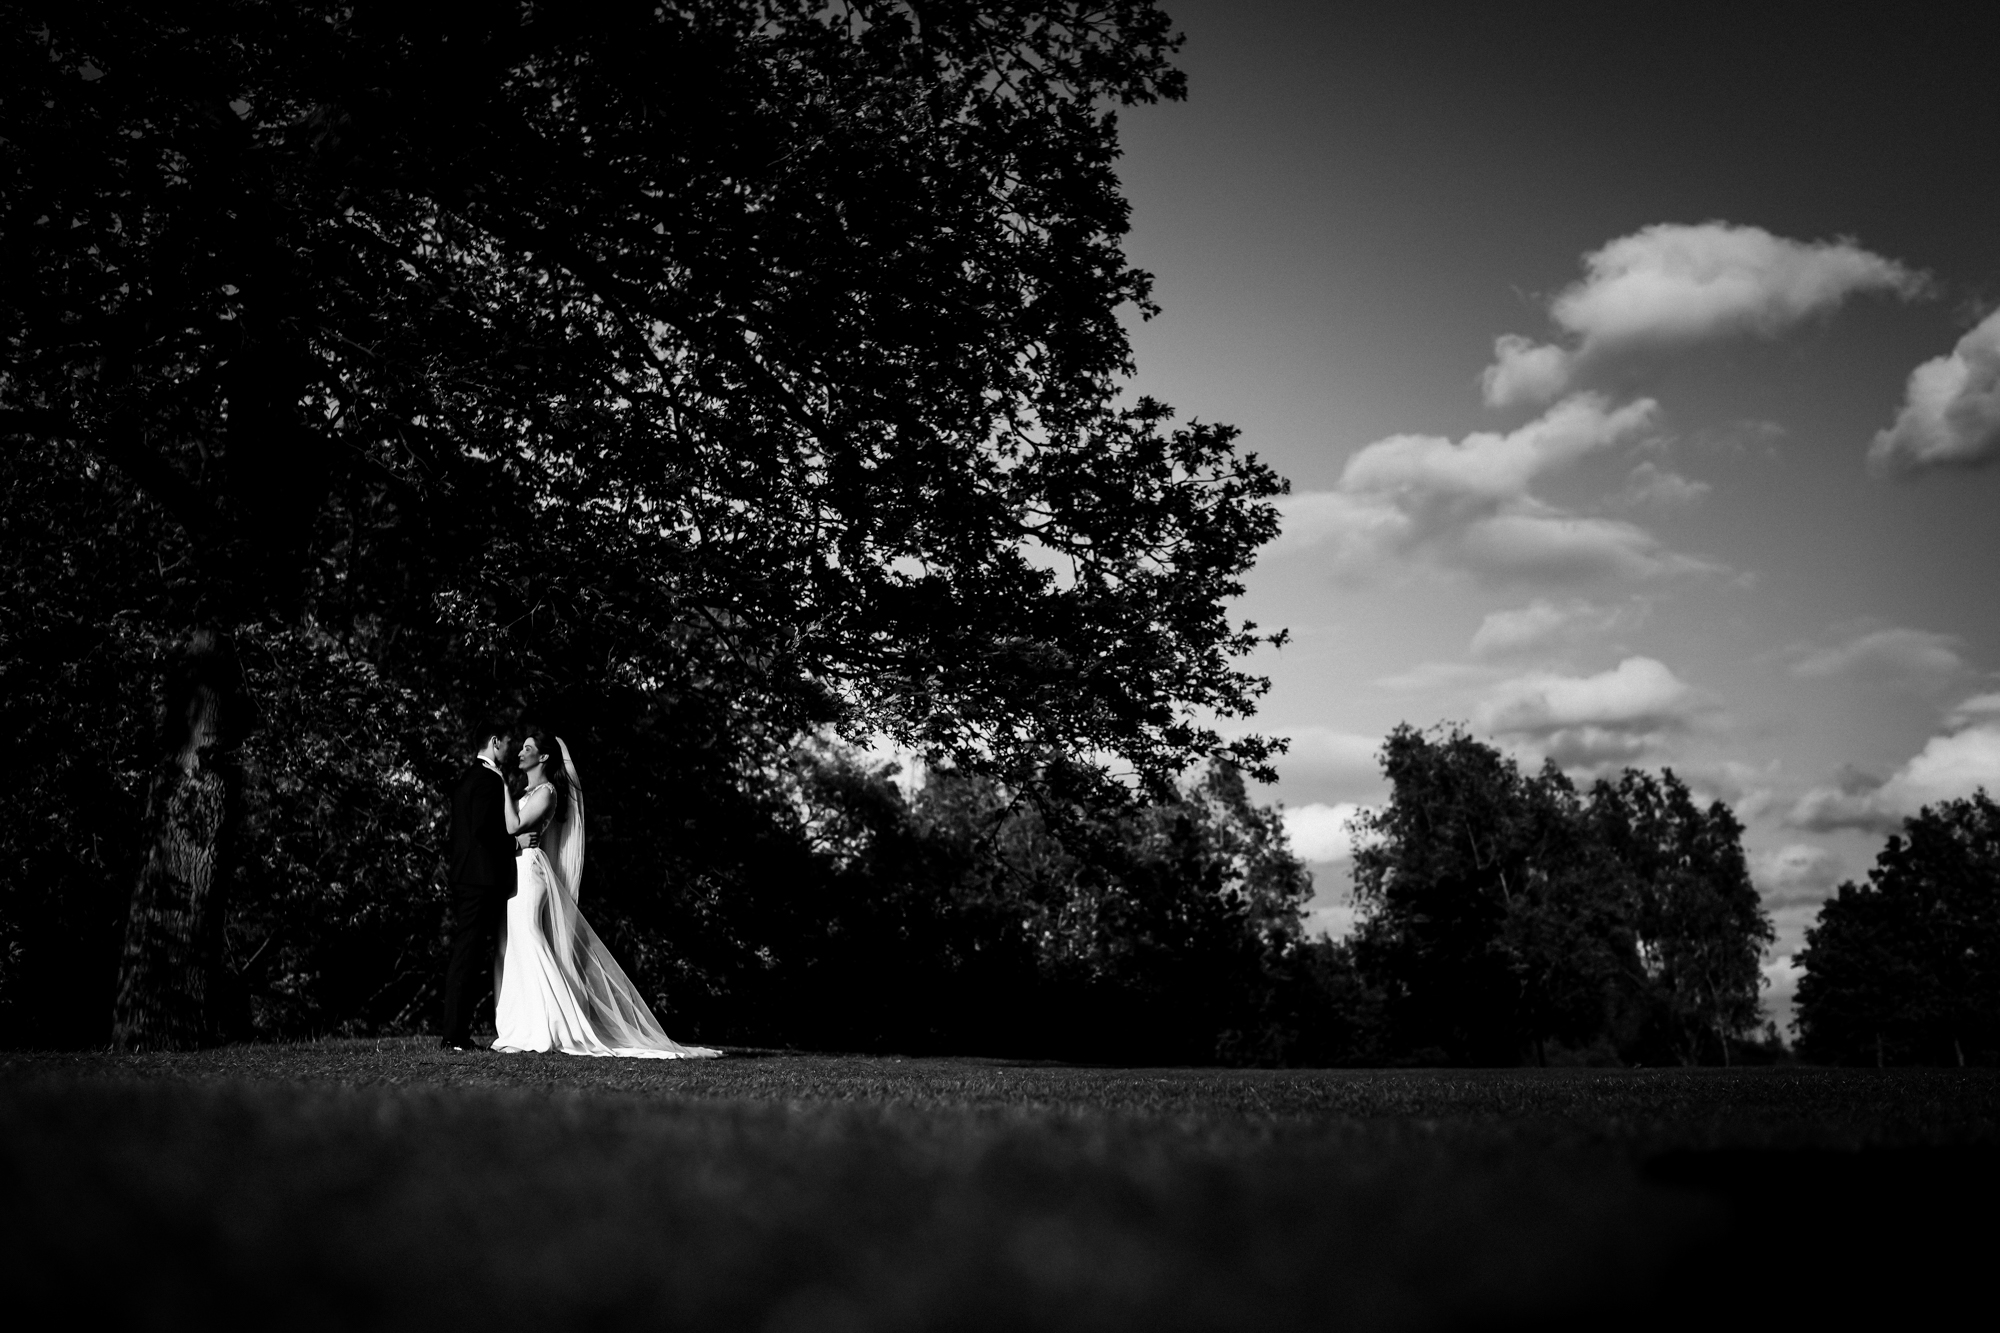 Styal Lodge Wedding Photography Cheshire wedding photographer (48 of 54).jpg